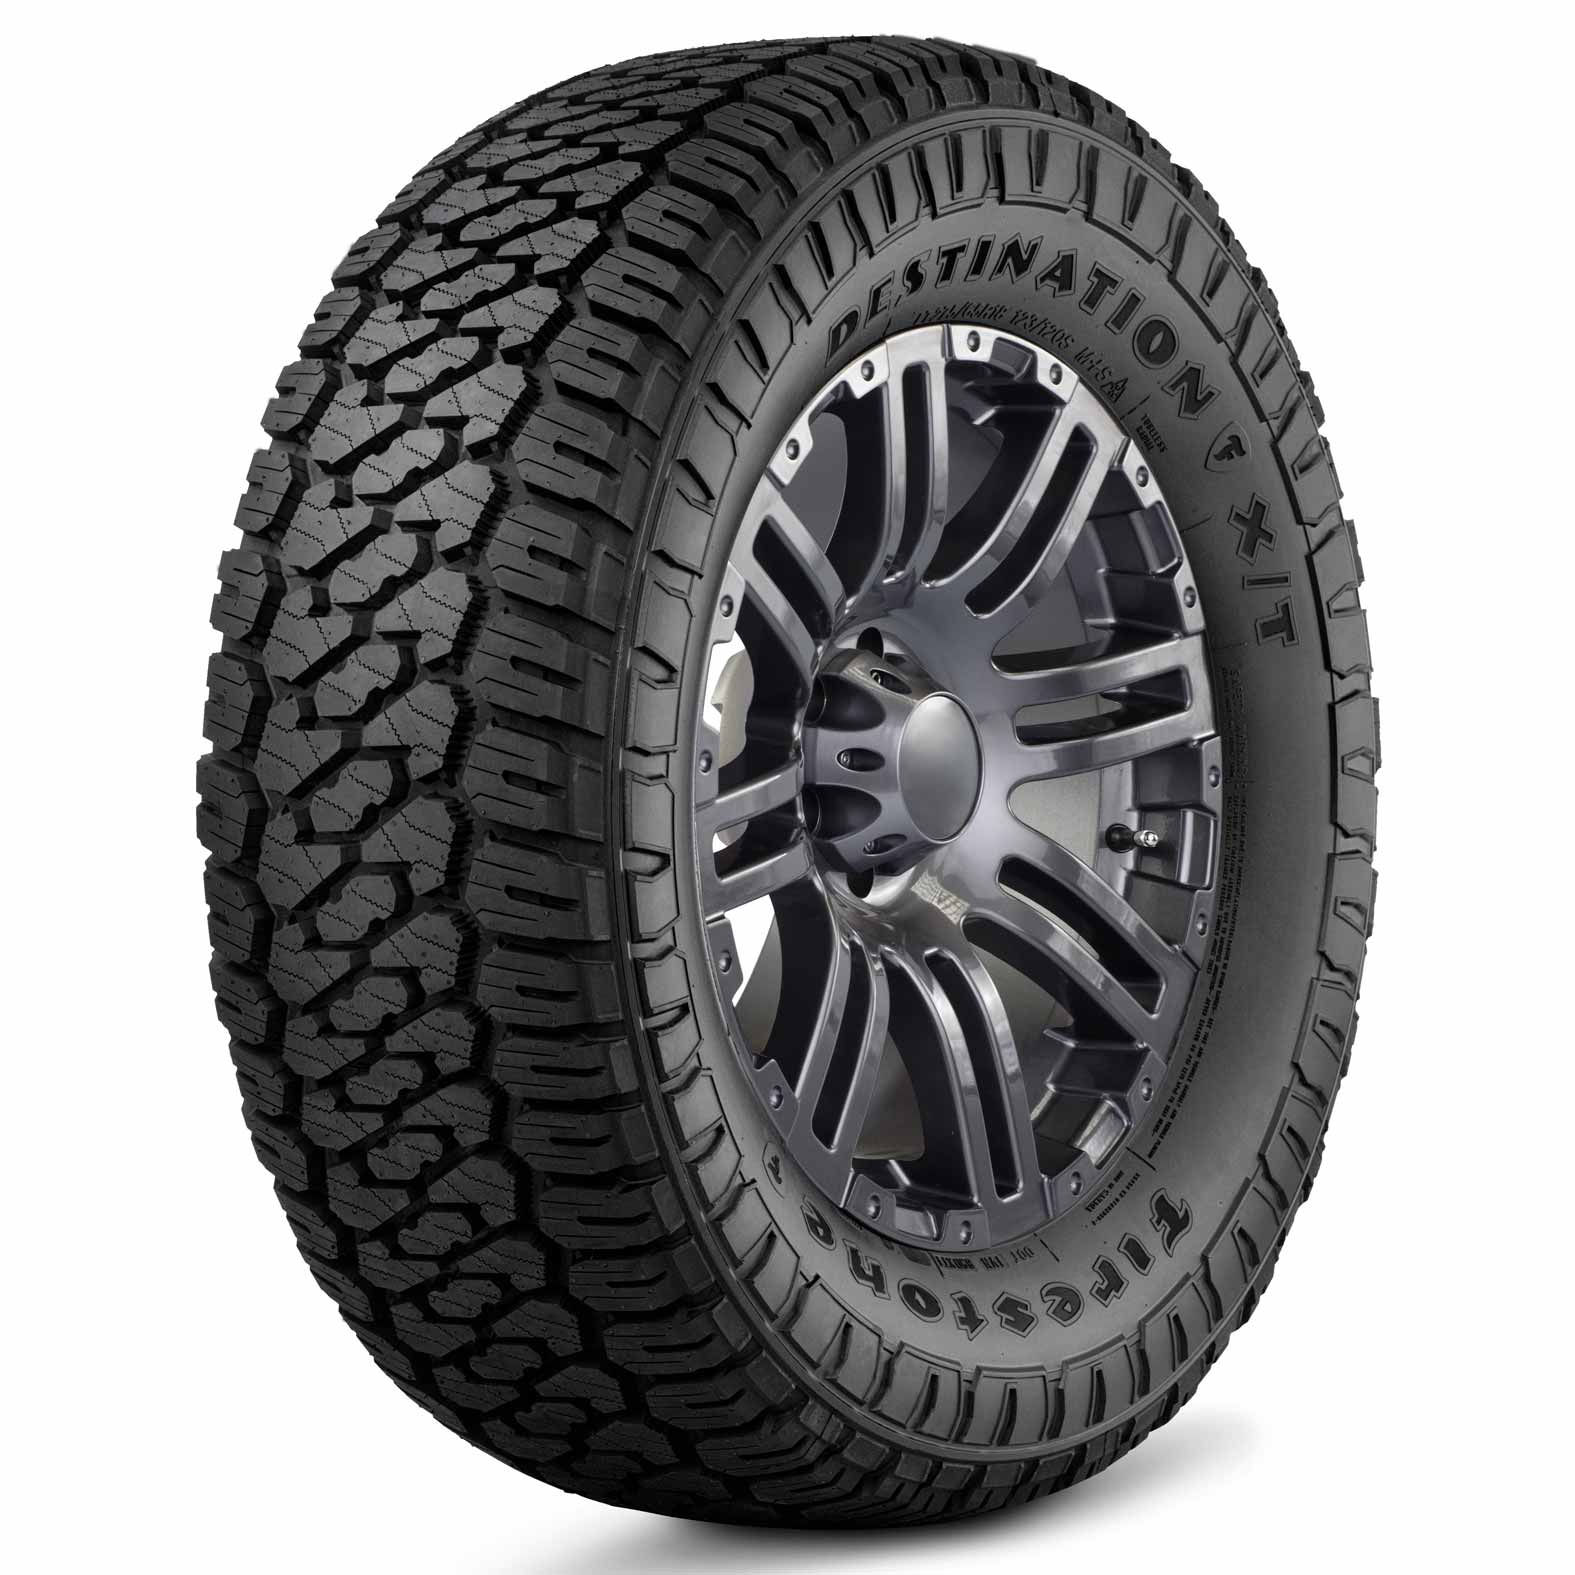 Firestone Destination X/T tire - angle